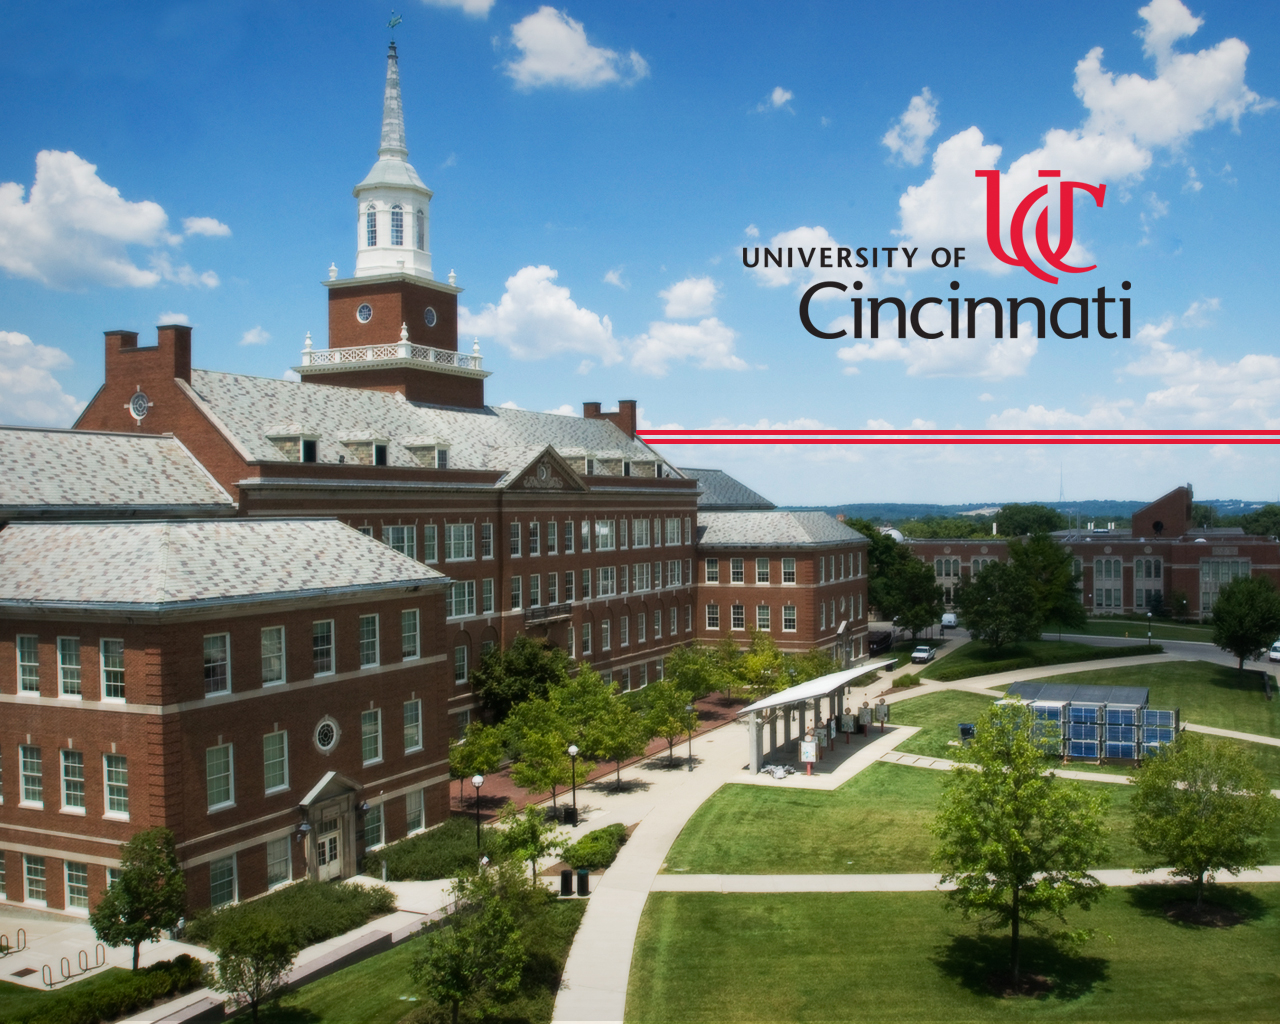 University Of Cincinnati Classroom Design Guide ~ Things you can expect coming to u of cincinnati